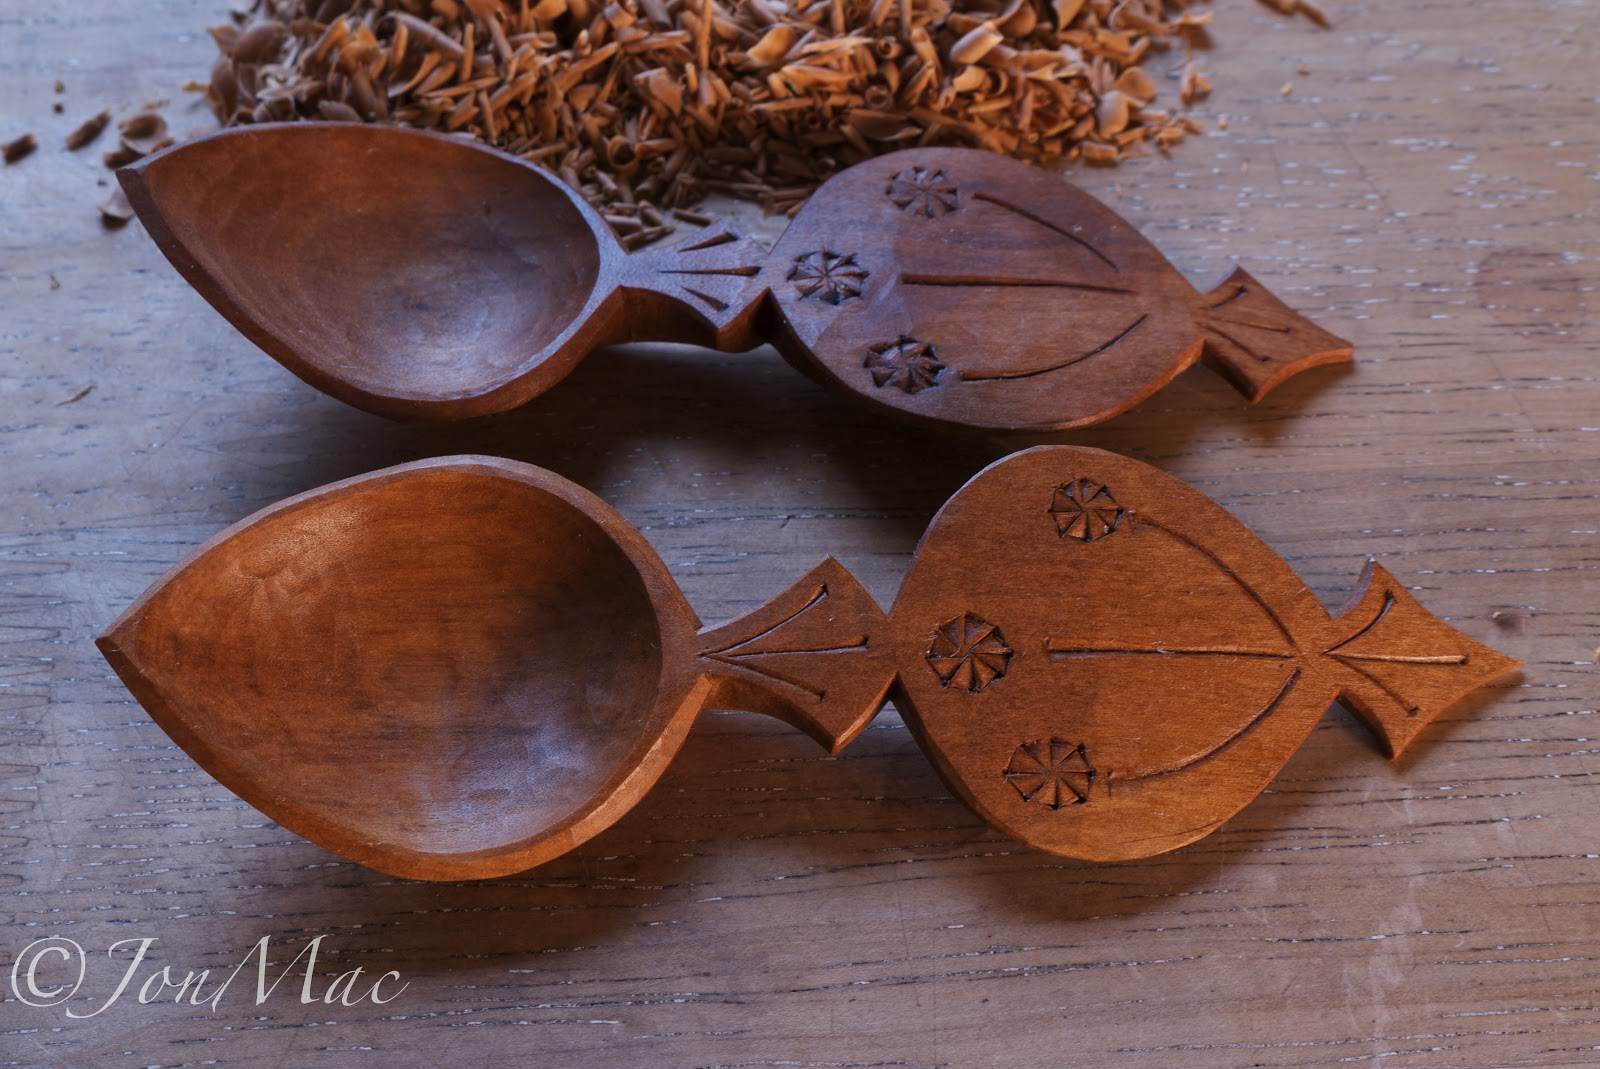 Spoon carving first steps tutorial how to